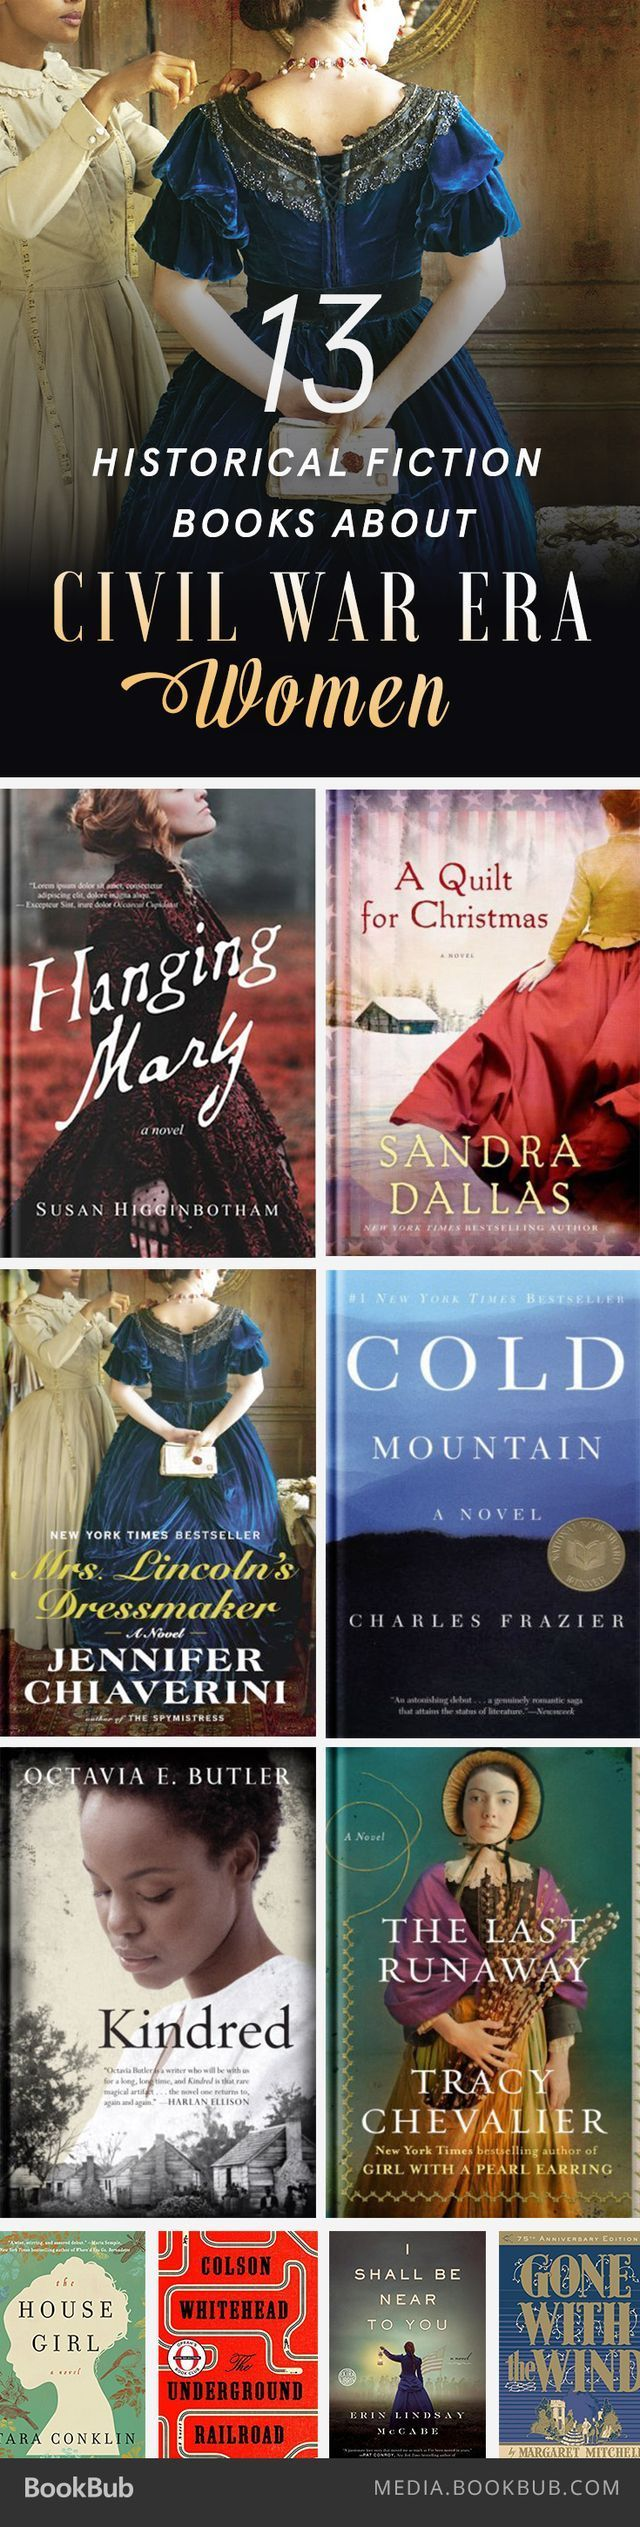 13 Historical Fiction Books About Civil War Era Women - Looking for your next historical fiction read? Check out these 13 books about women in the Civil War.